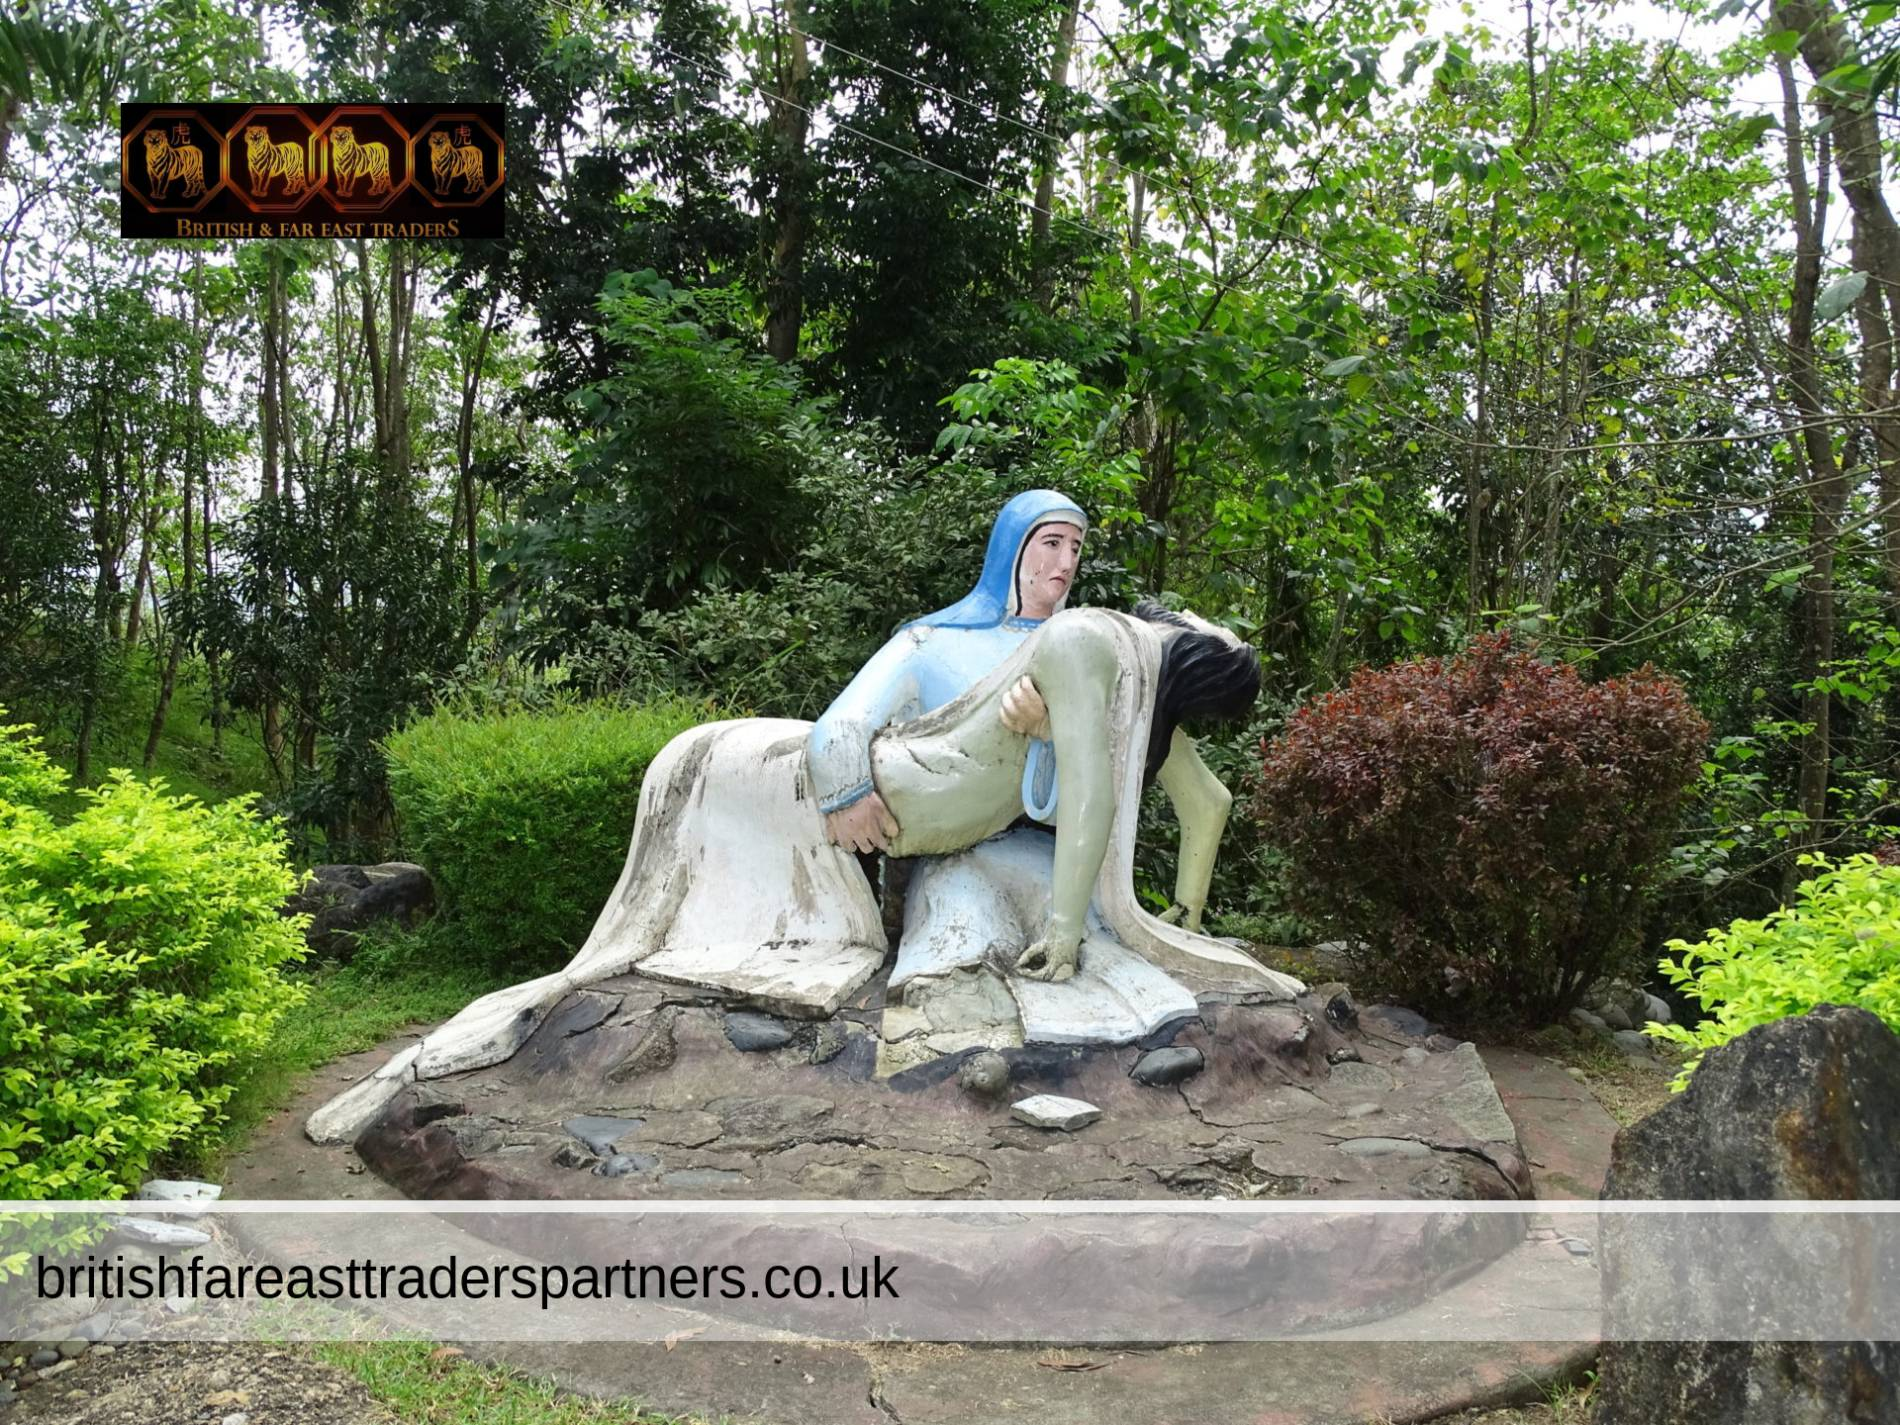 MELT YOUR STRESSES AWAY WITH A RELAXING VISIT TO DARIOK HILLS IN BALINTOCATOC SANTIAGO CITY